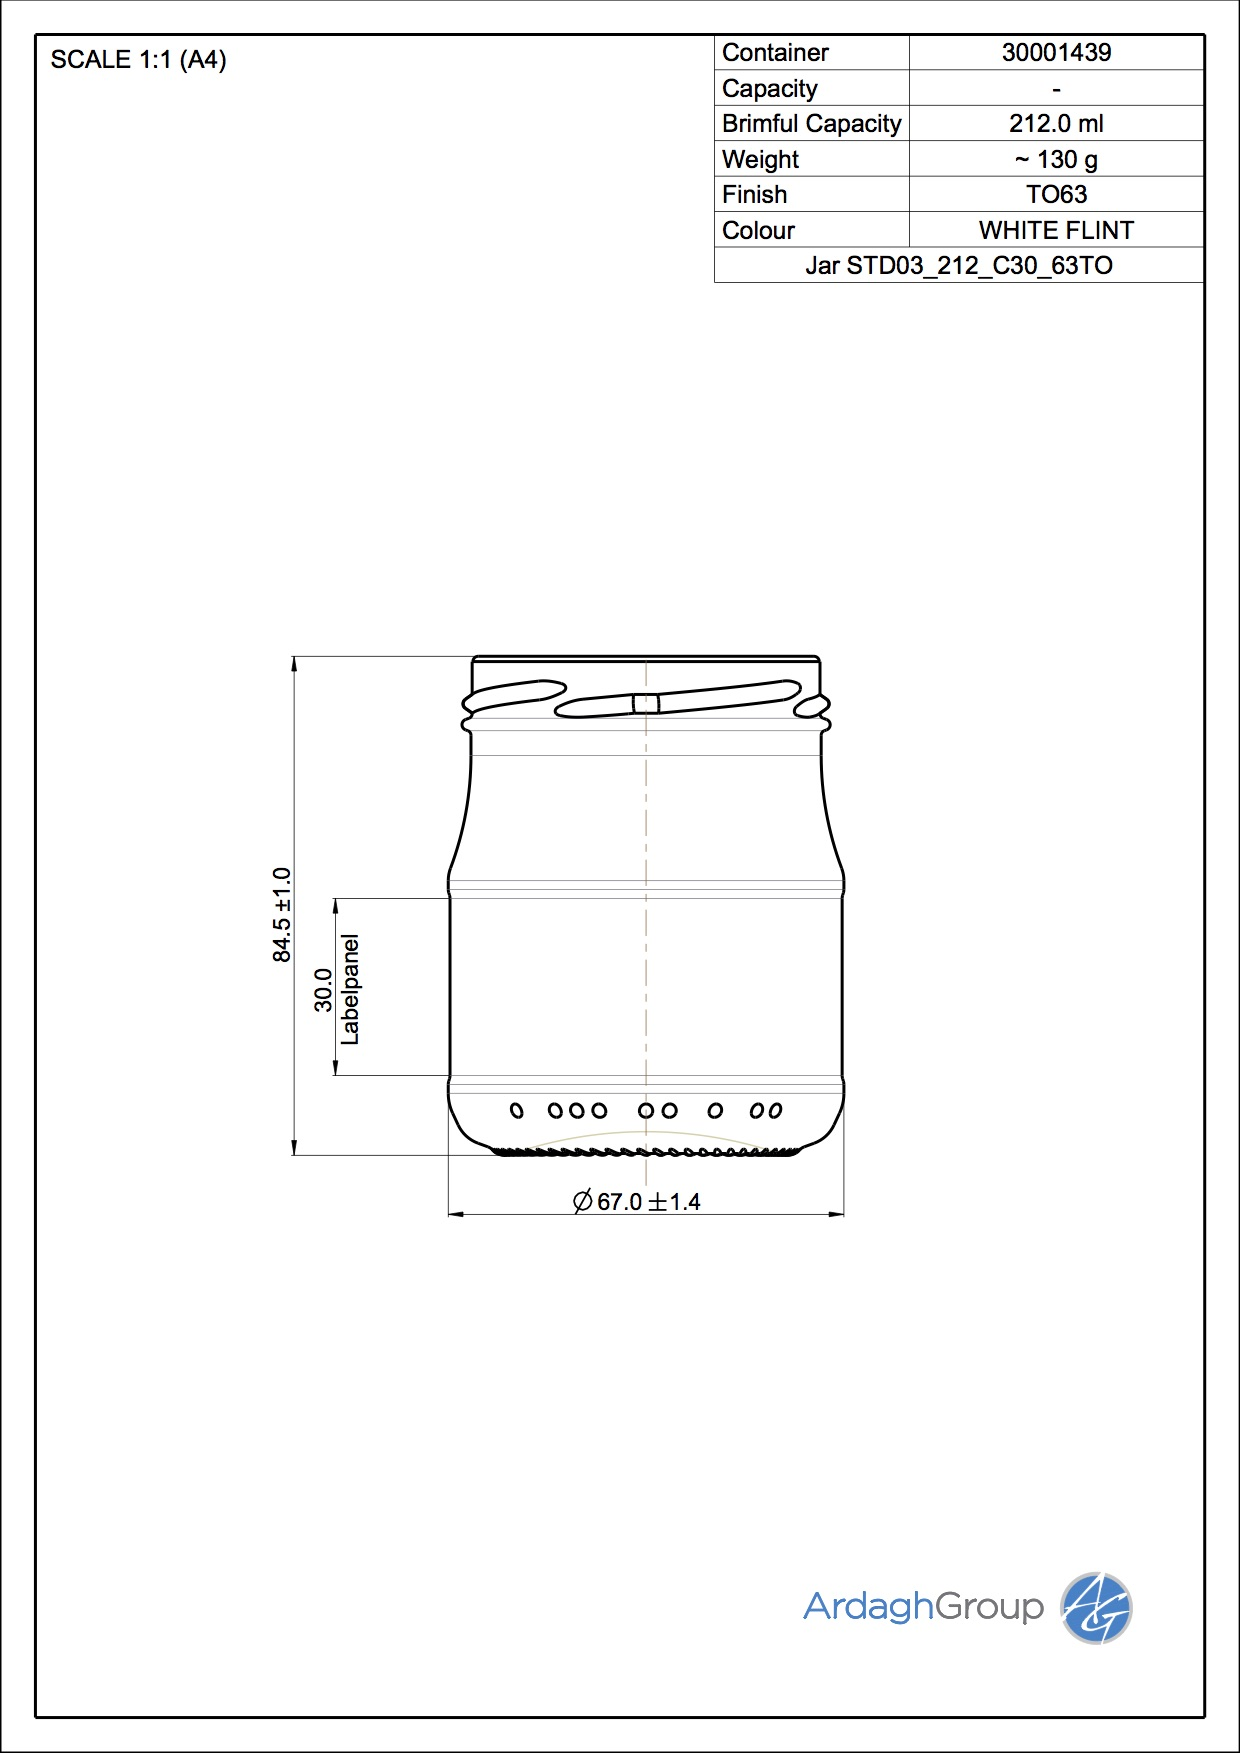 Jar STD03 212 C30 63TO